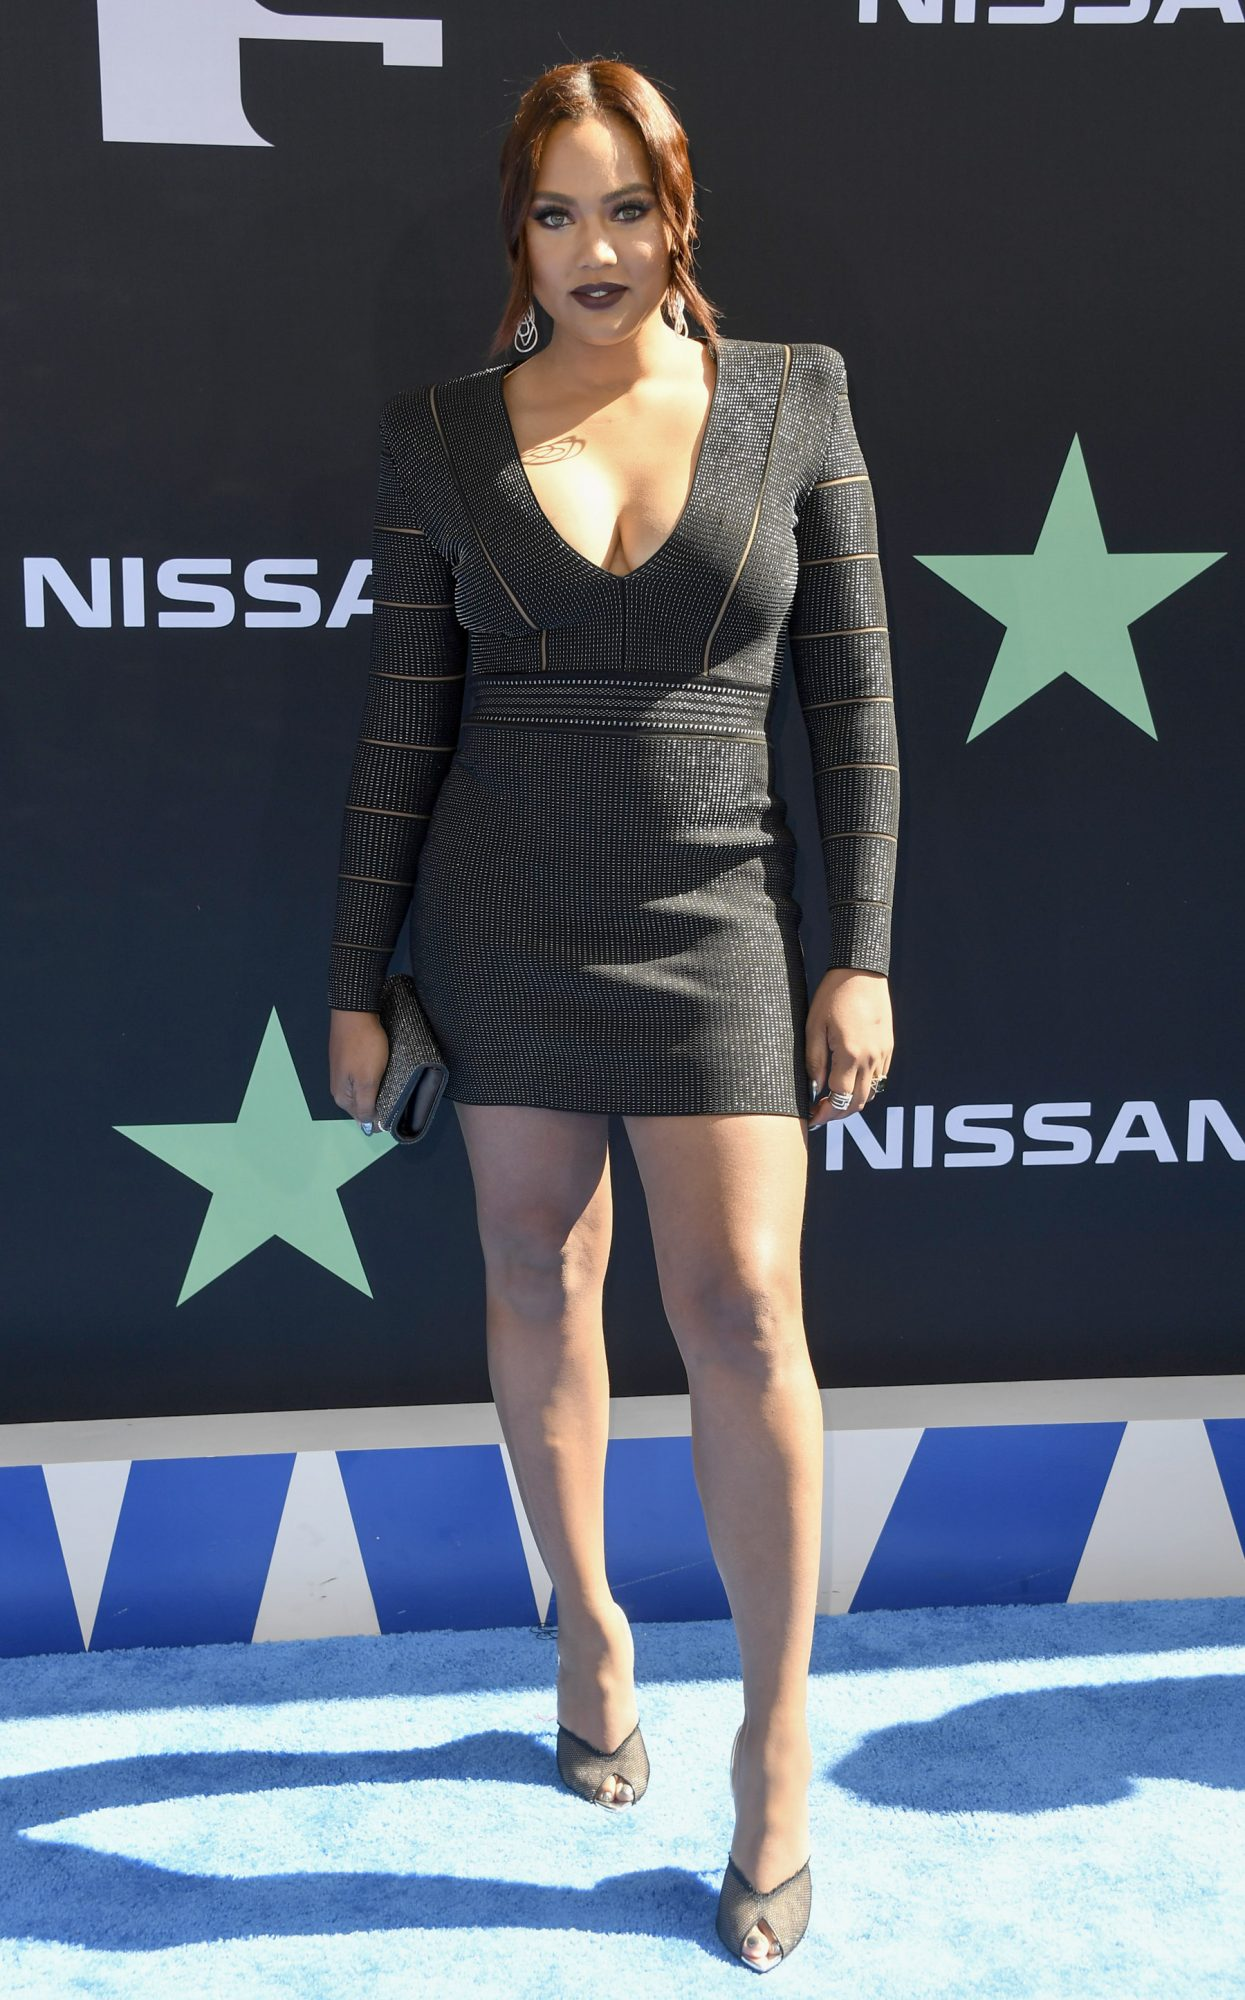 LOS ANGELES, CALIFORNIA - JUNE 23: Ayesha Curry attends the 2019 BET Awards on June 23, 2019 in Los Angeles, California. (Photo by Frazer Harrison/Getty Images)